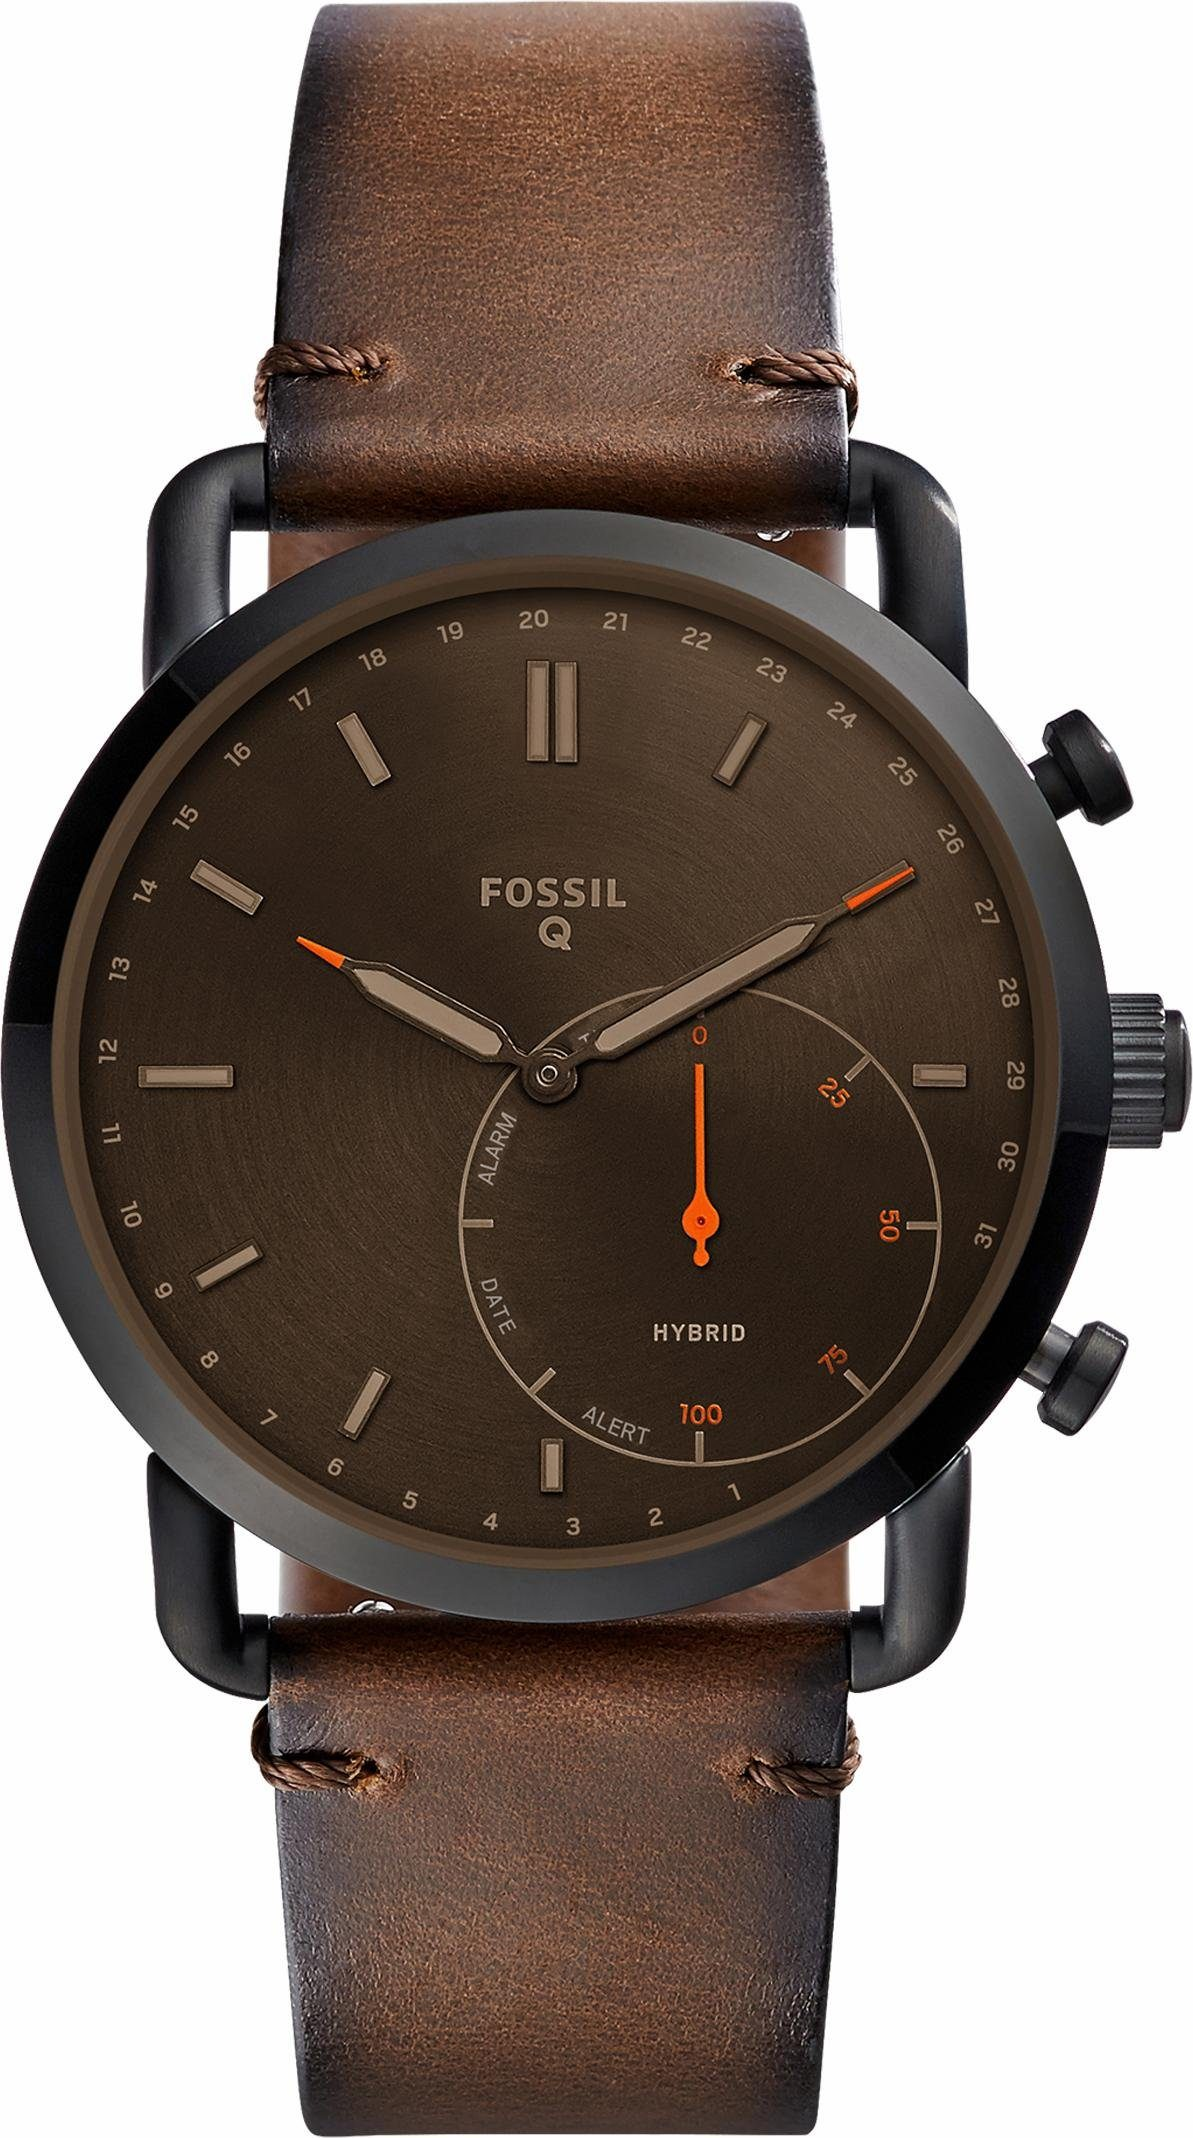 FOSSIL Q Q COMMUTER, FTW1149 Smartwatch (Android Wear)